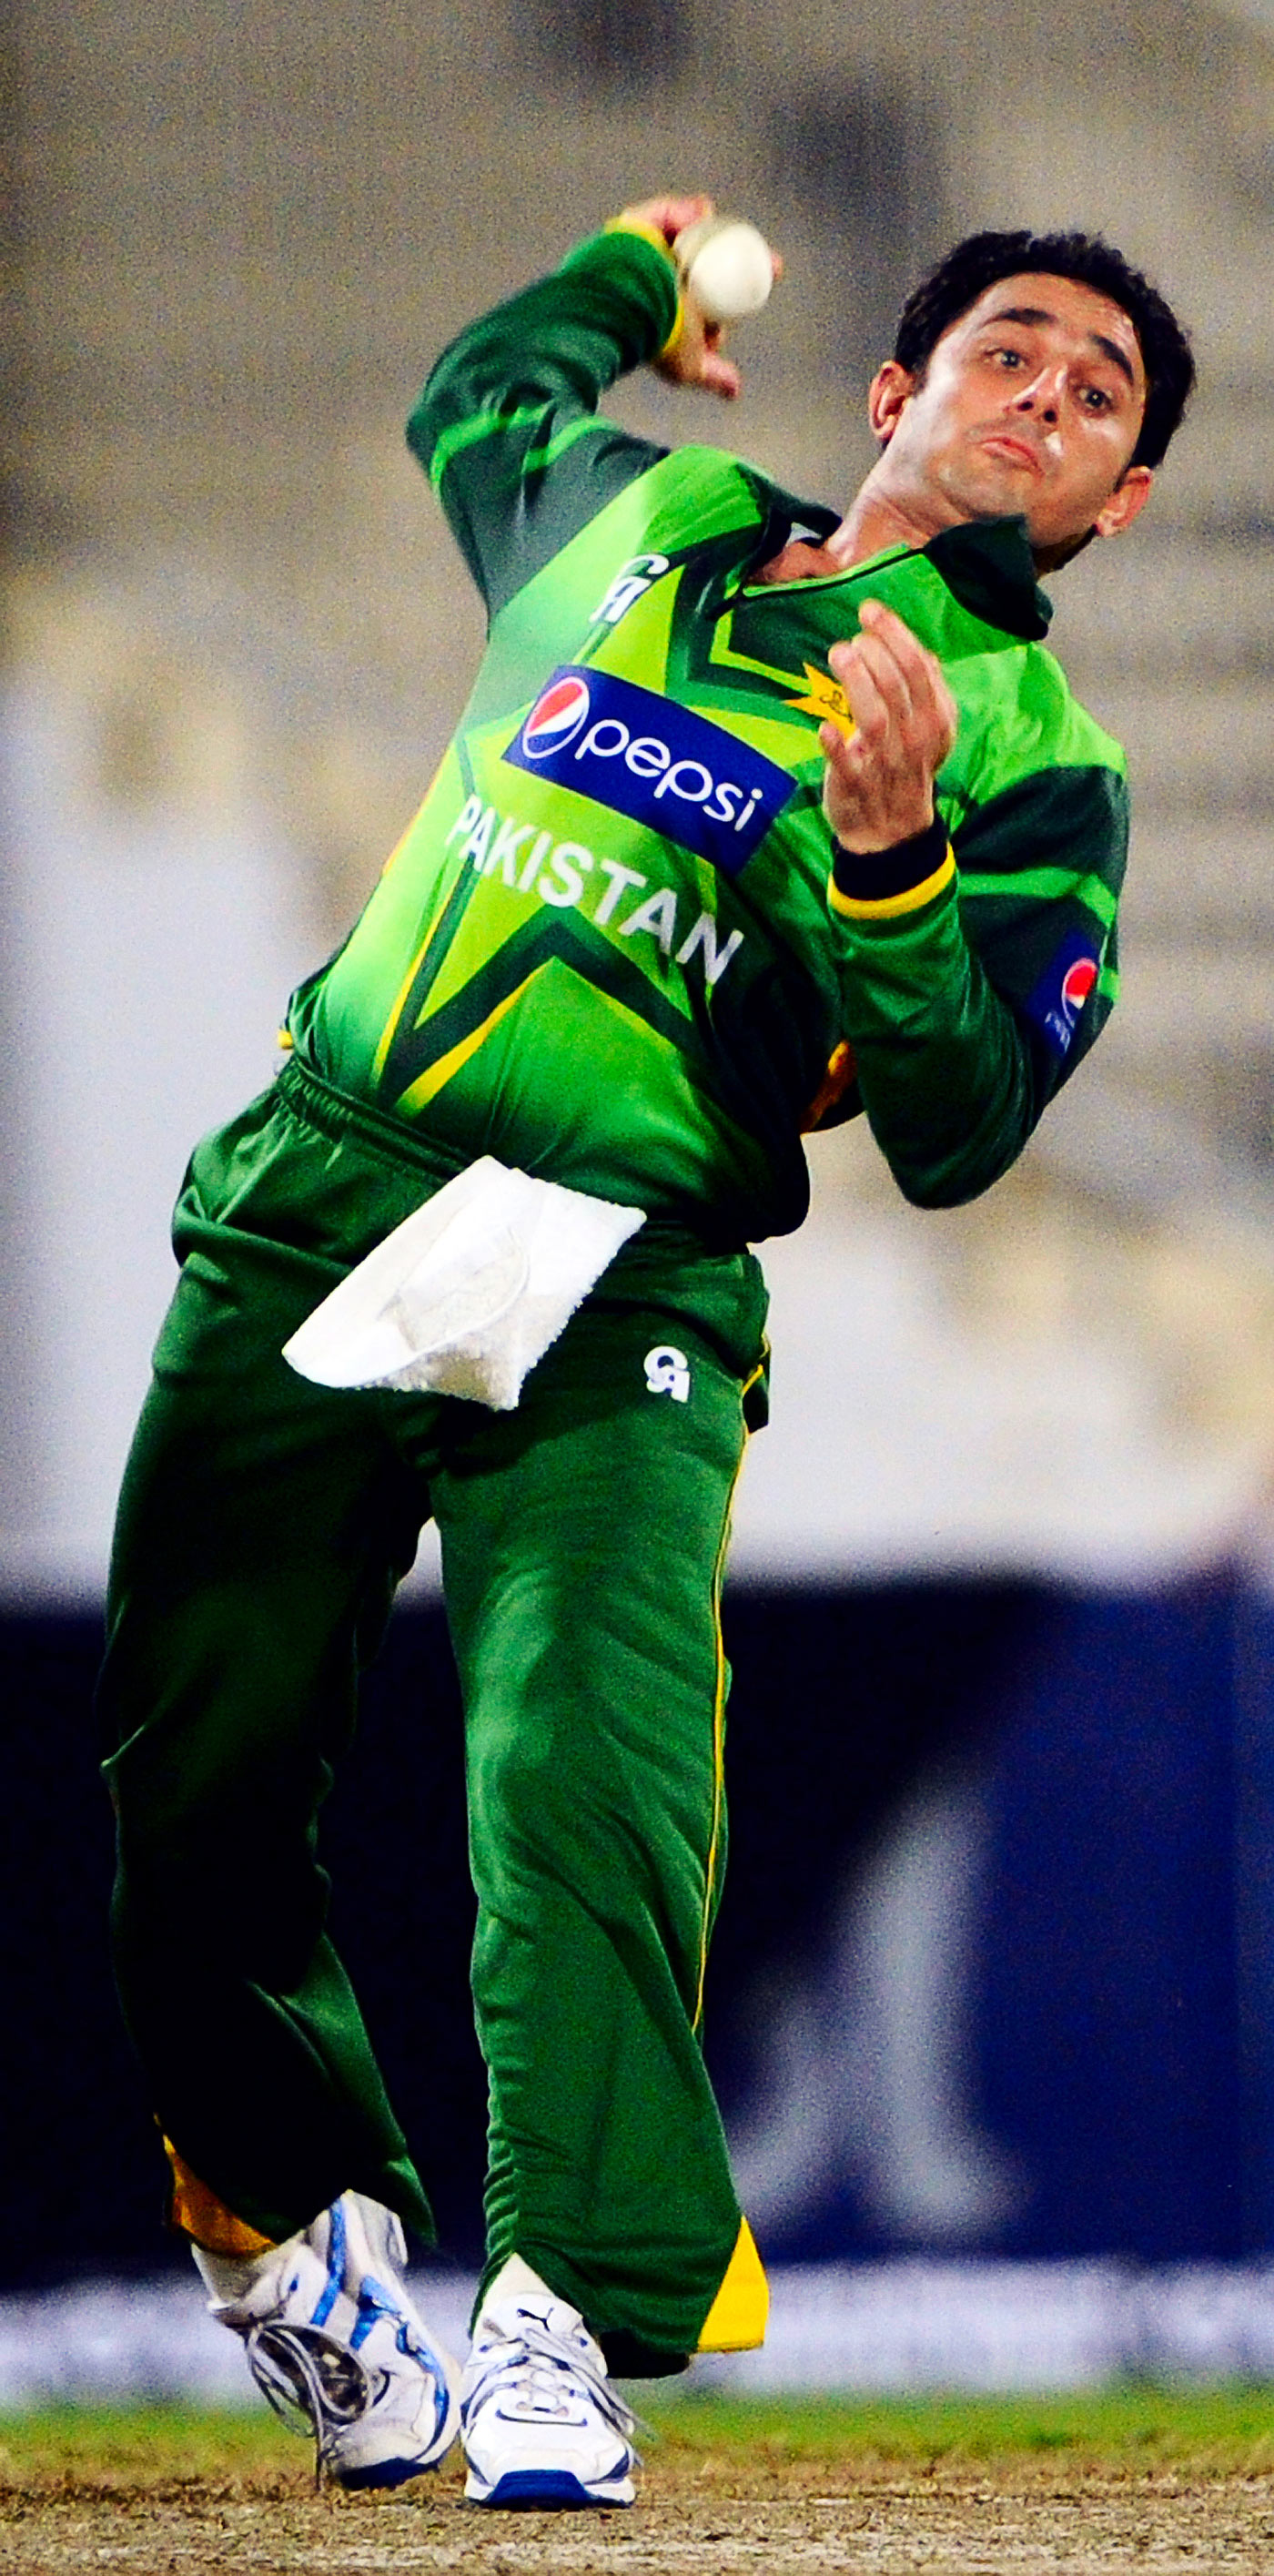 From May 2011, no specialist bowler has bowled as many balls (13,346) in all formats as Saeed Ajmal. How can a bowler have the same action across such a vast number of deliveries?